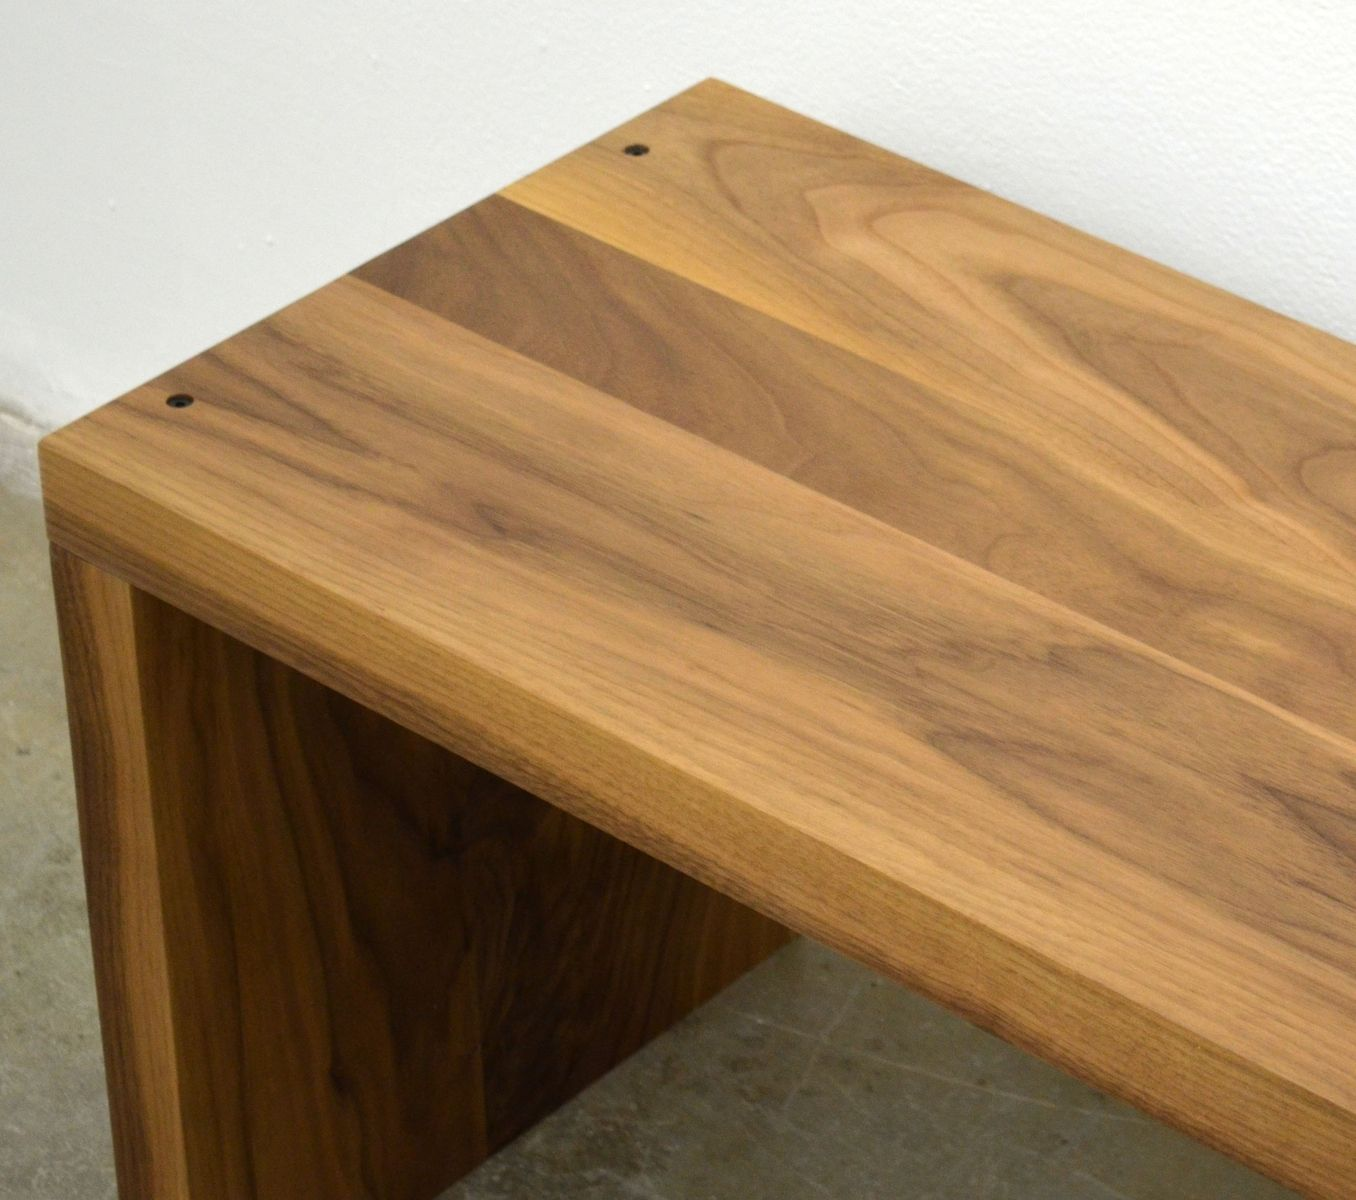 Solid Walnut Bedroom Furniture Walnut Furniture Solid Black Walnut Tables And More Custommadecom